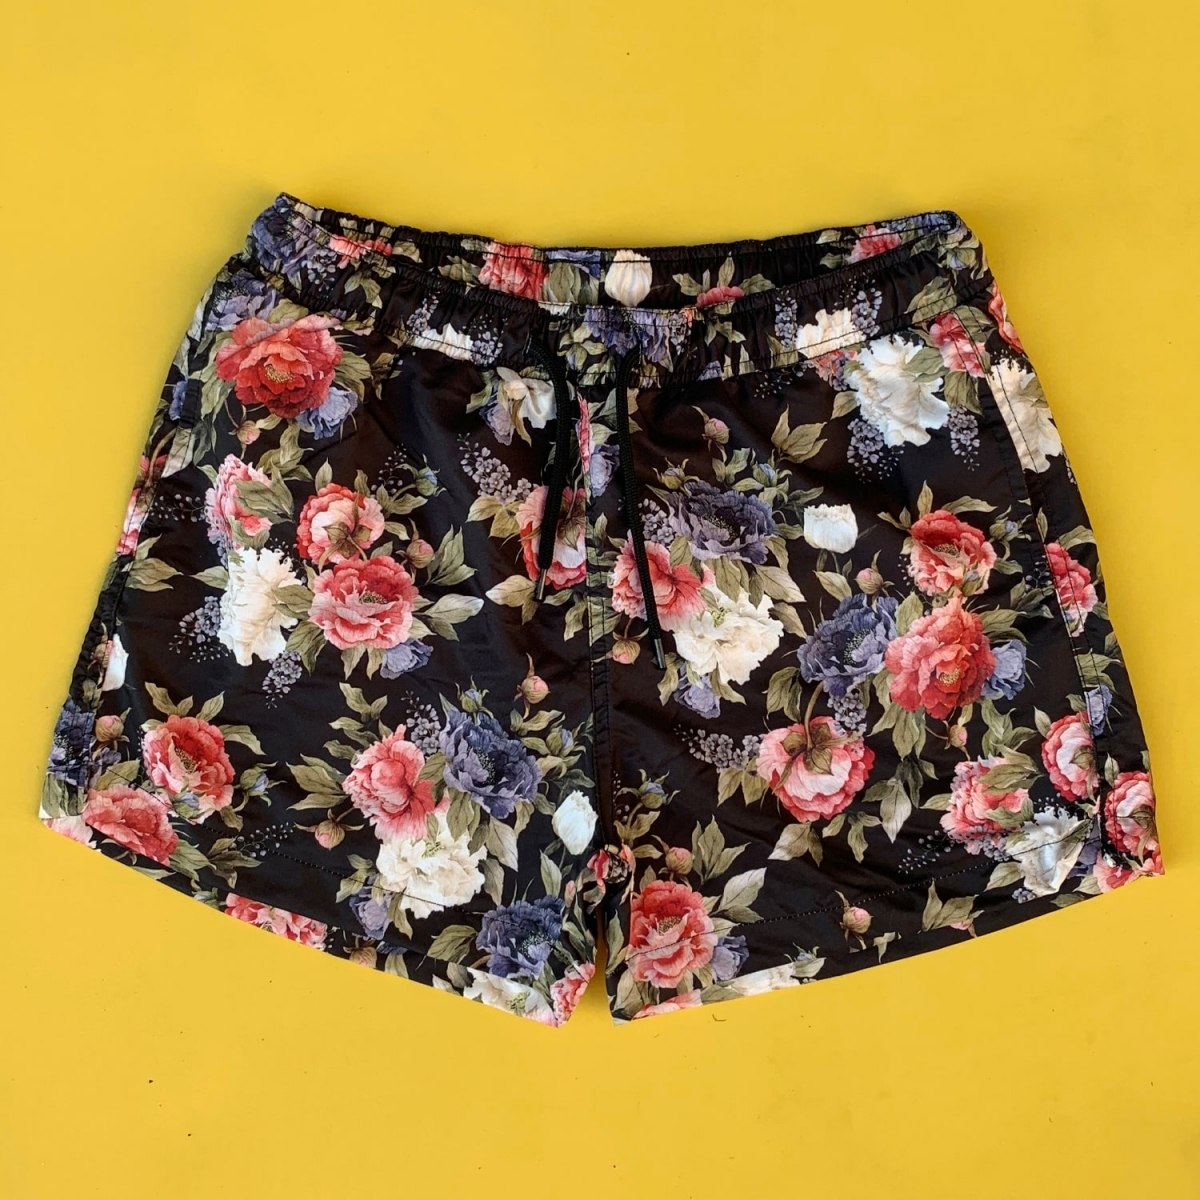 Men's Colorful Flowers Pattern Short Swim Shorts Black